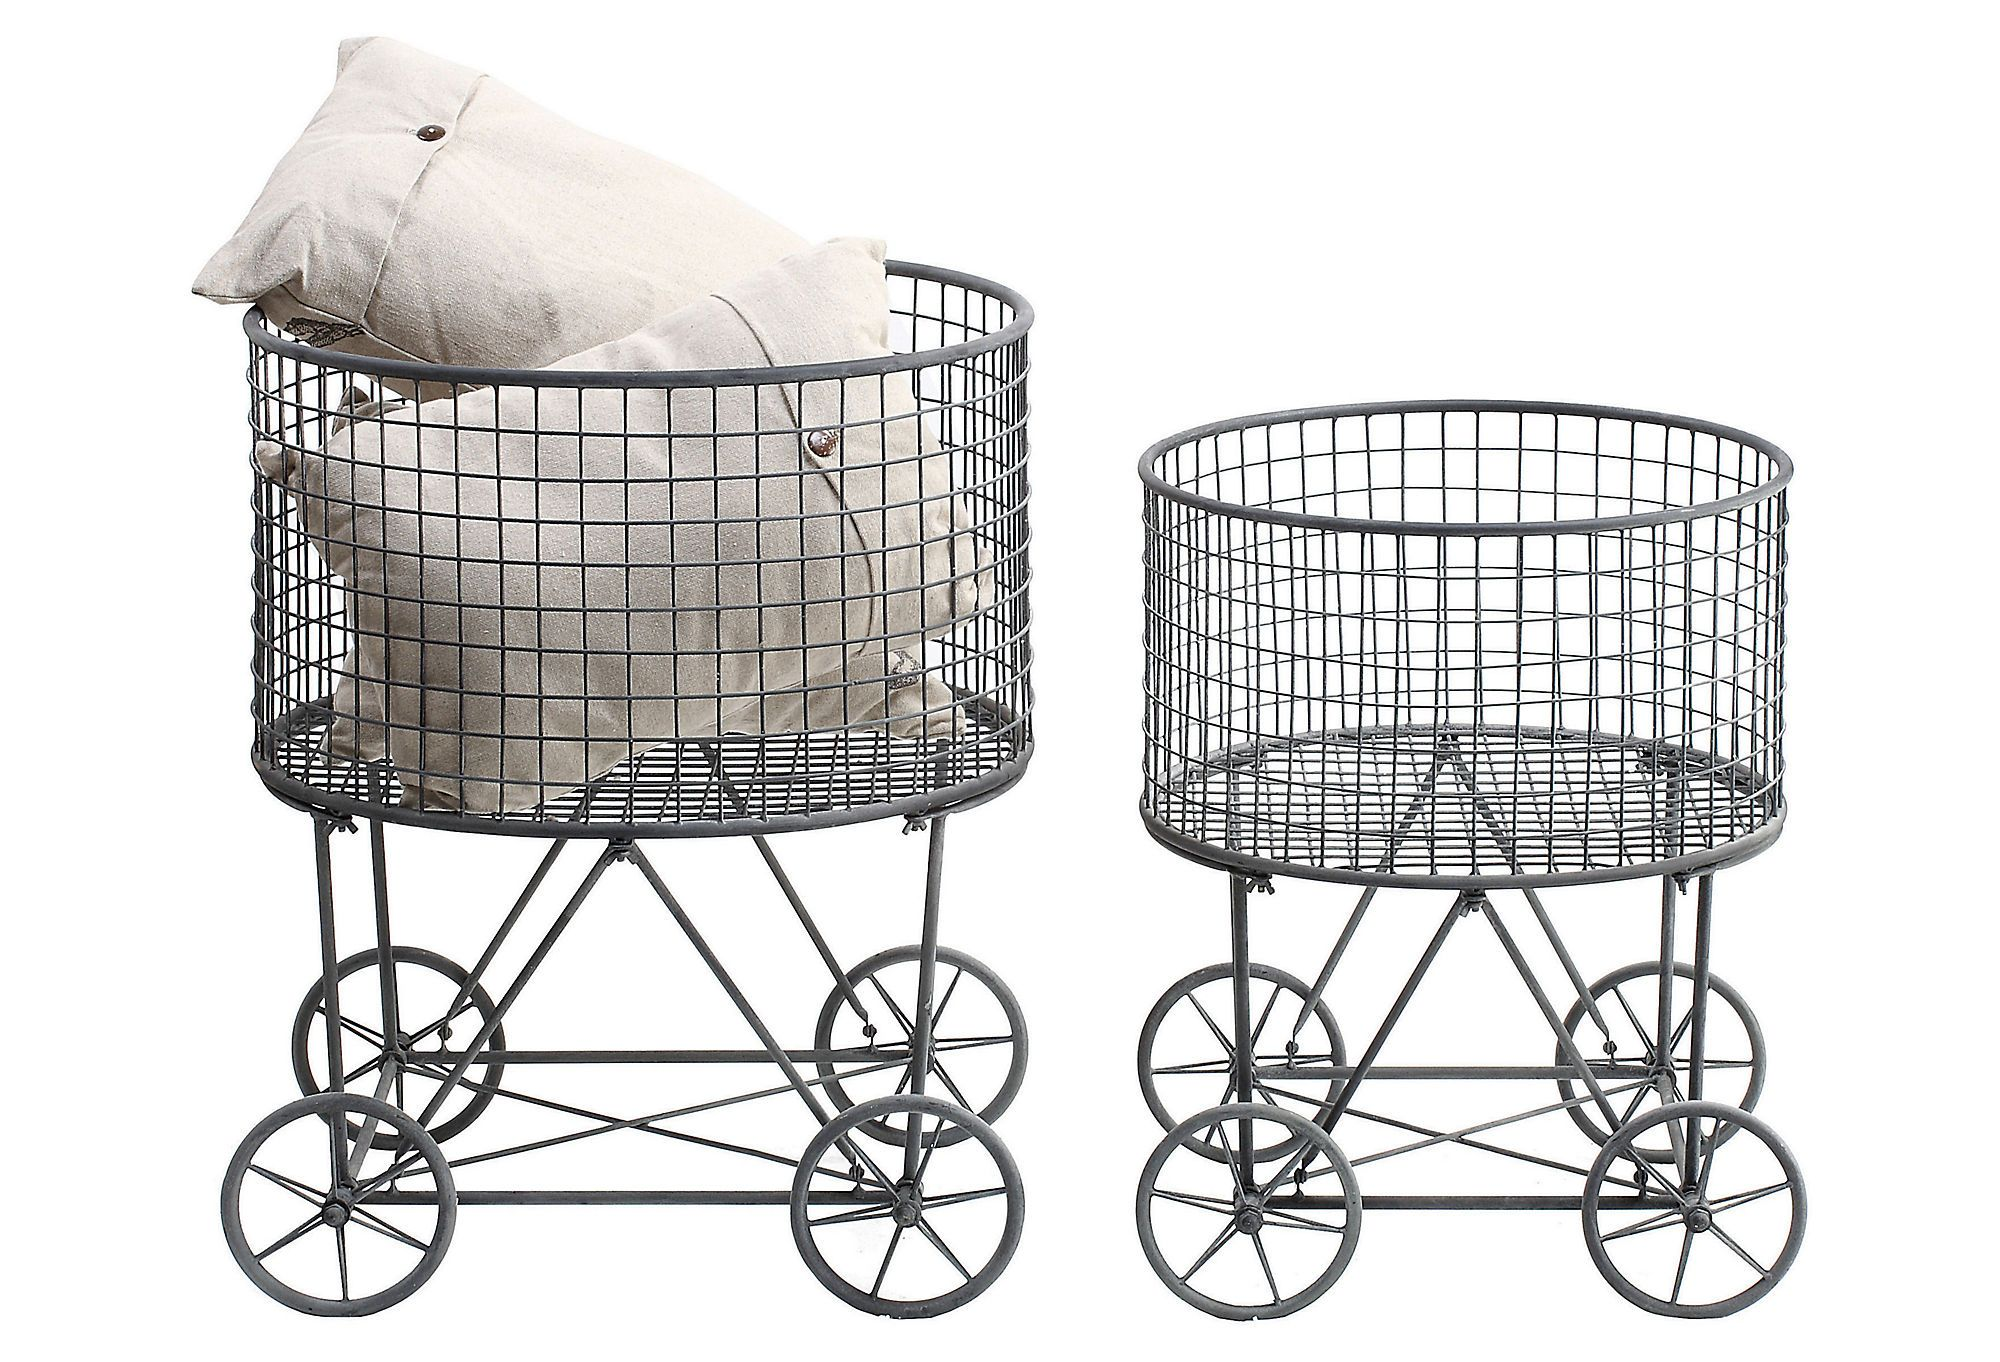 Wheeled Metal Laundry Baskets Via Okl Industrial